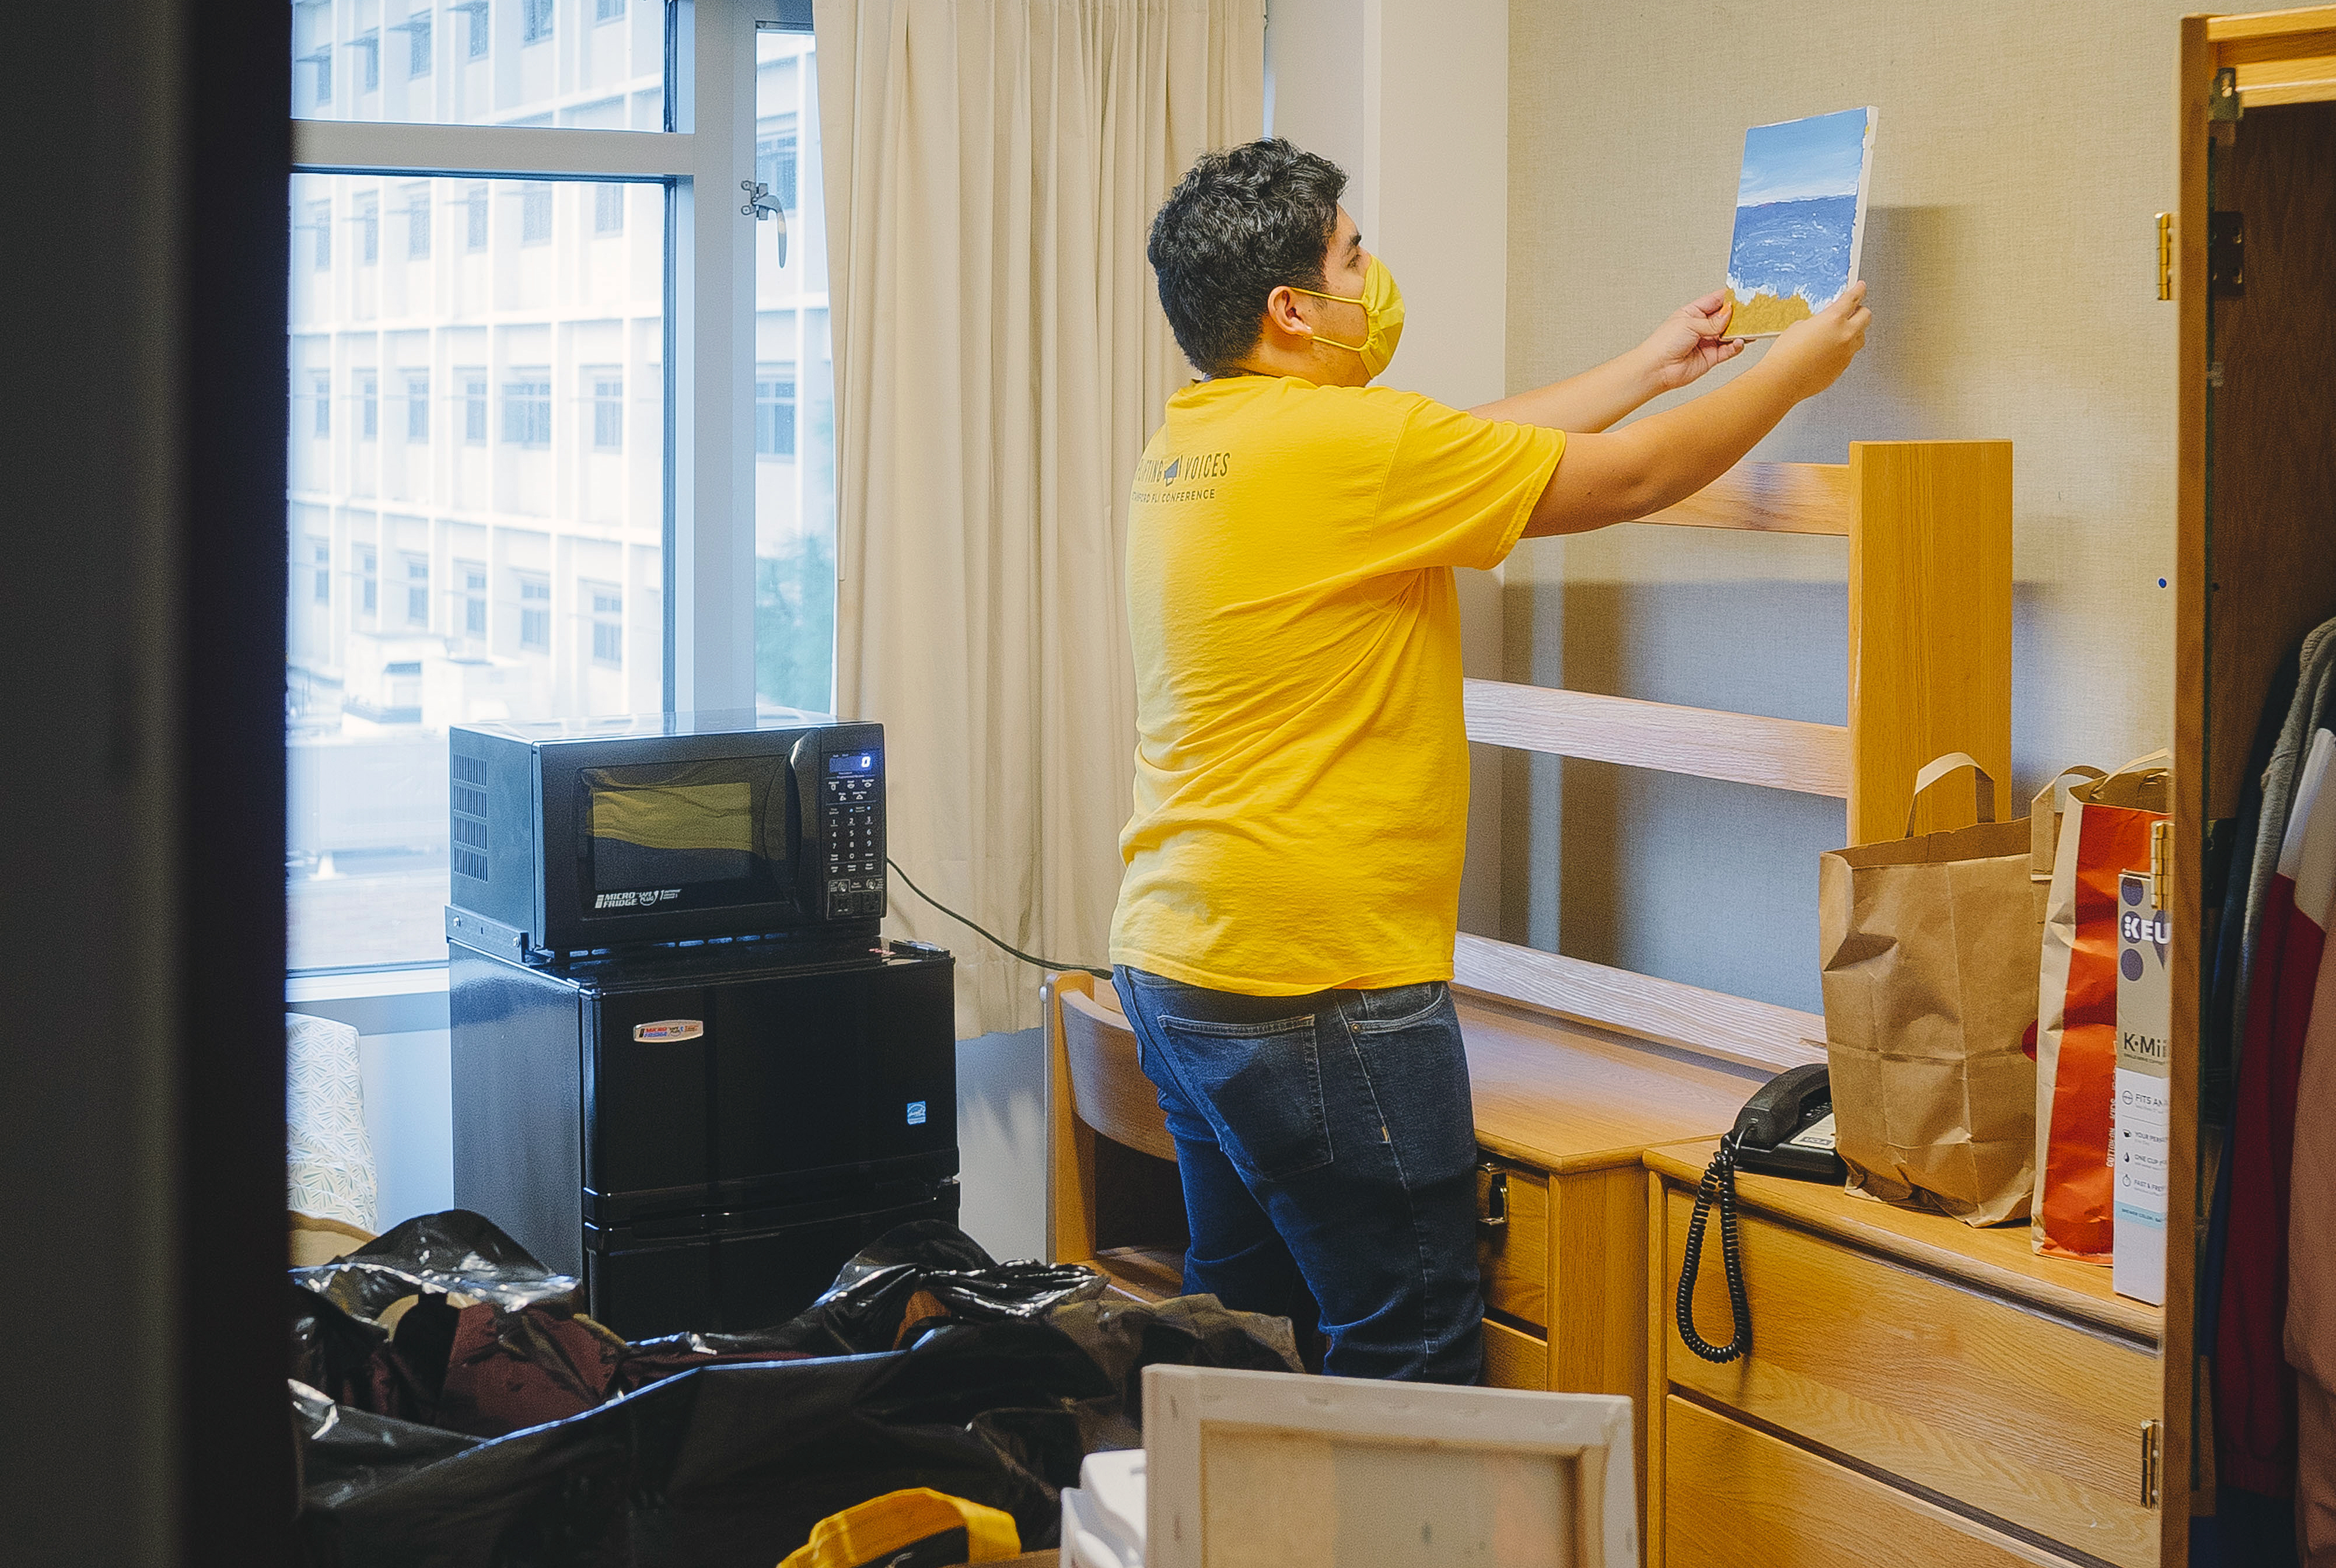 Gustavo De Santiago Reyes hanging a picture in his room